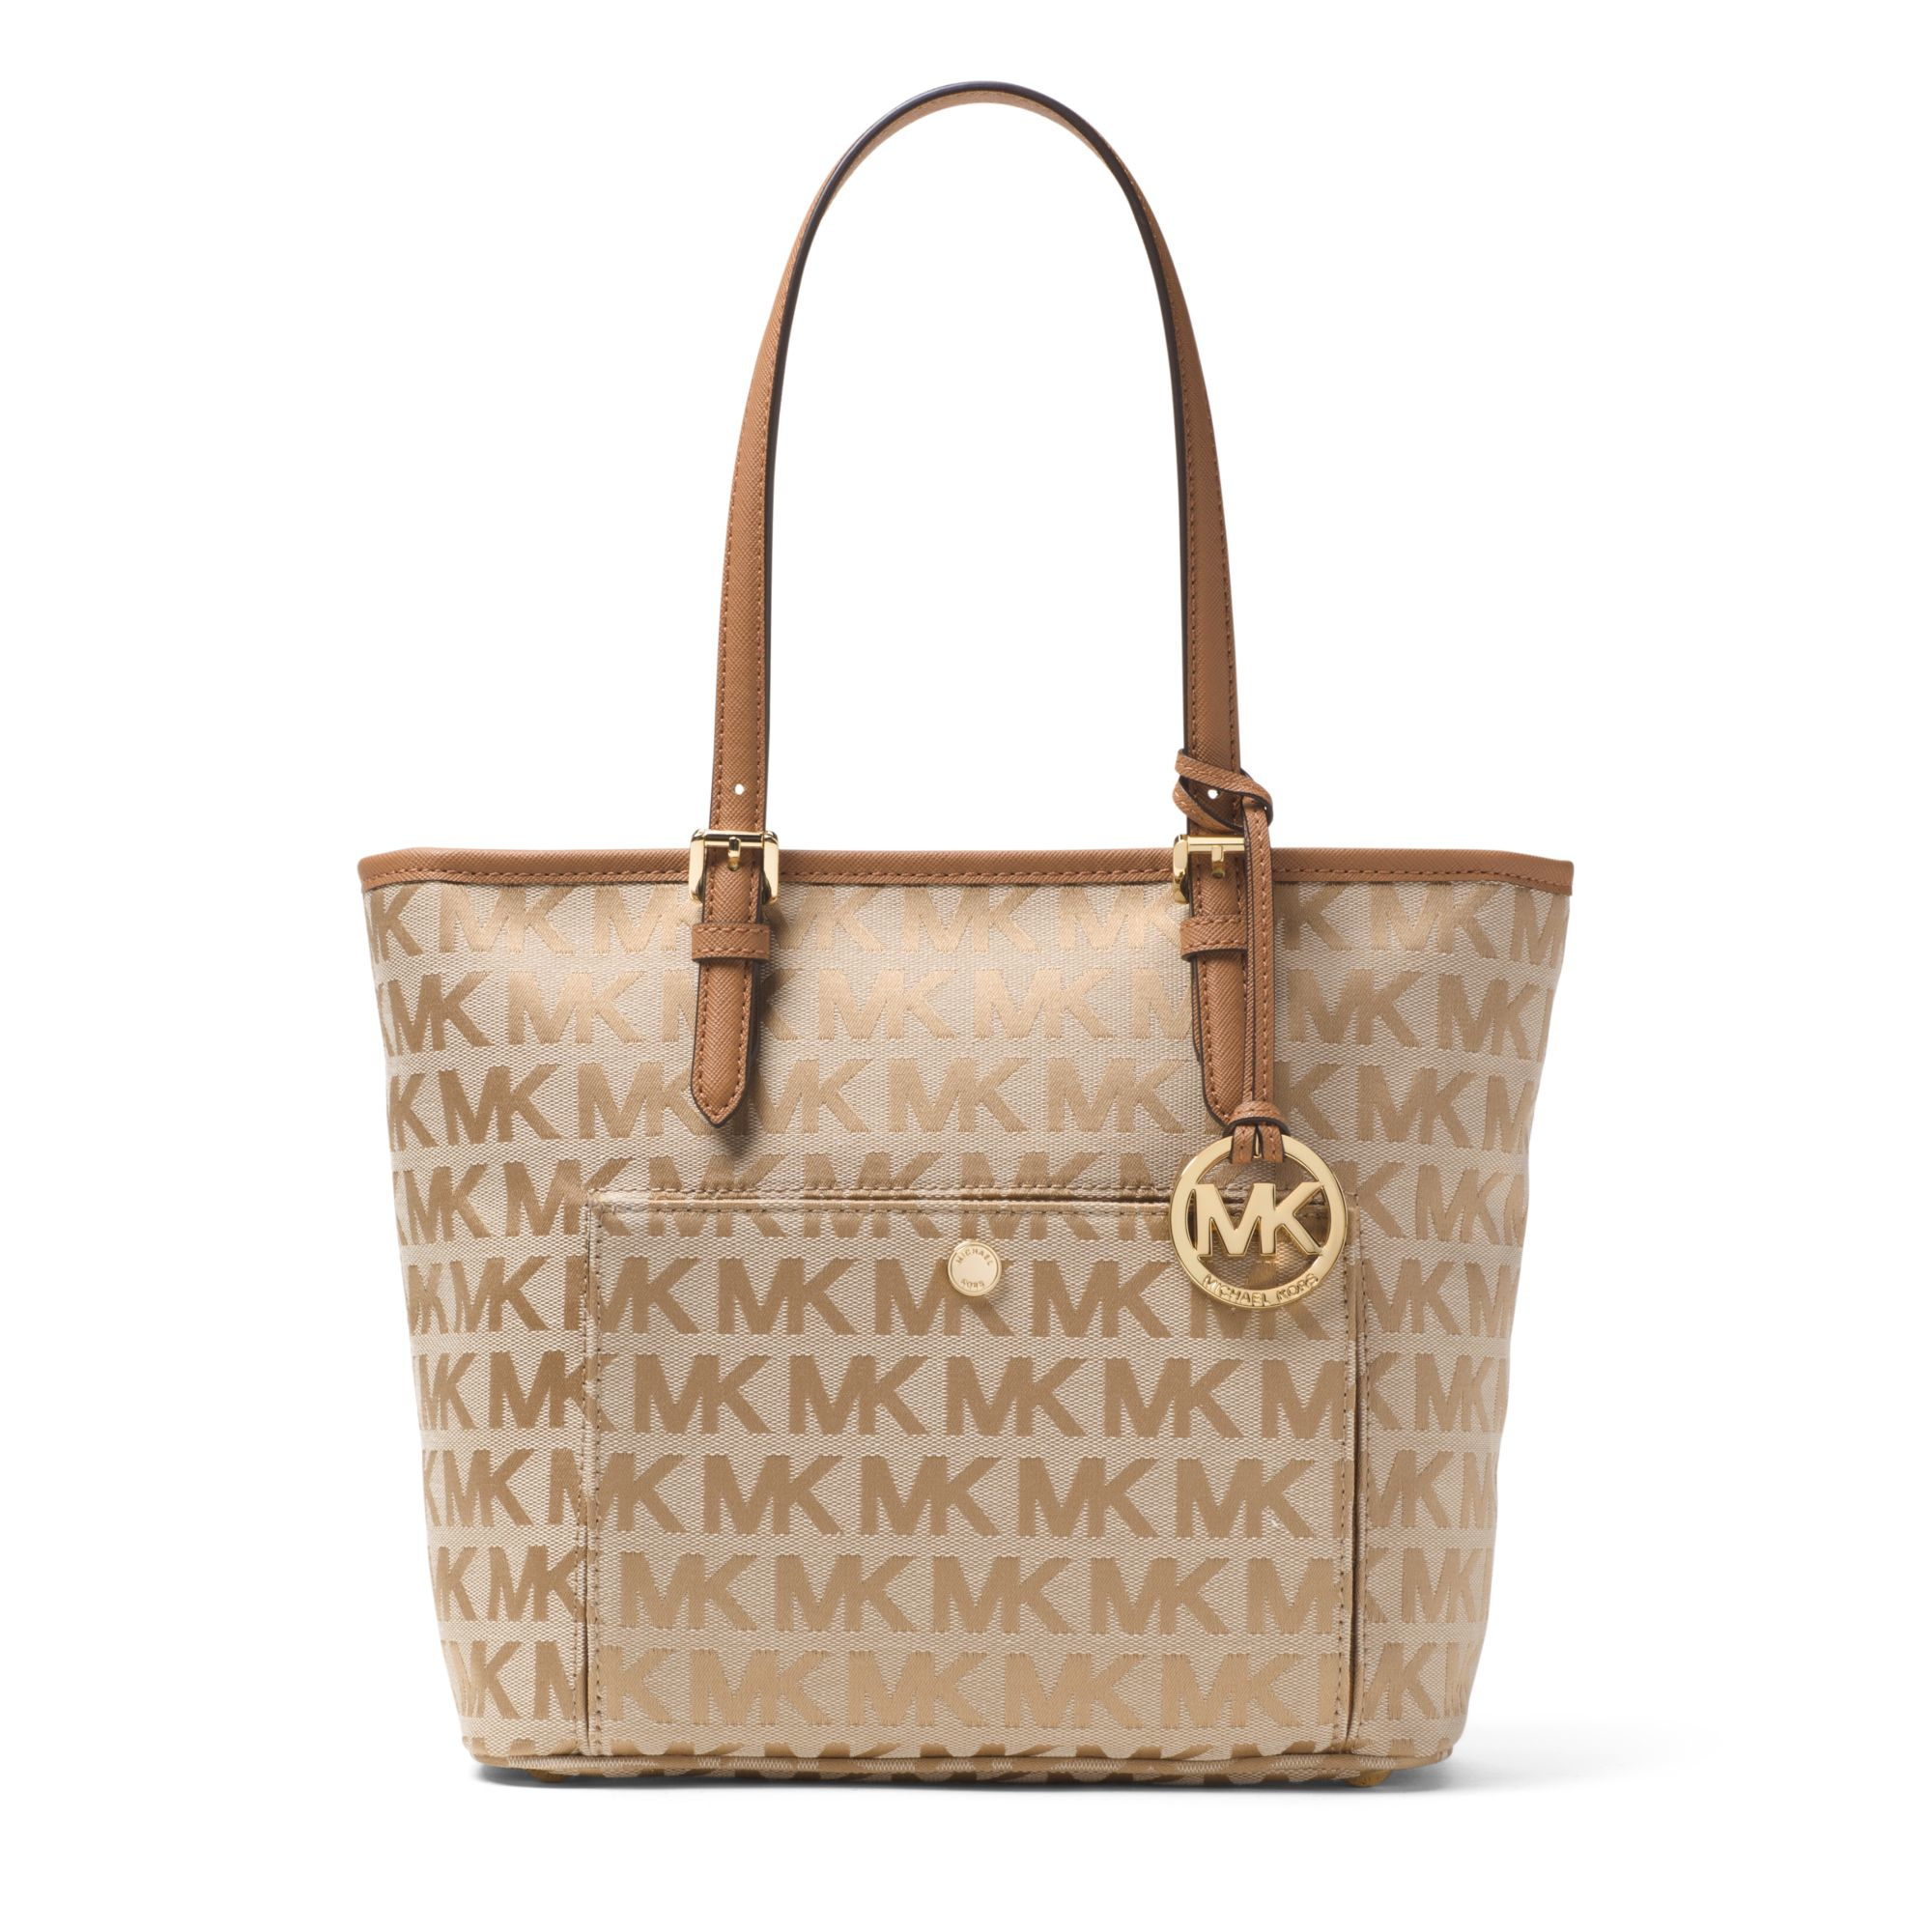 84d3108eb217c0 ... best lyst michael kors jet set travel medium tote in metallic a77f5  90711